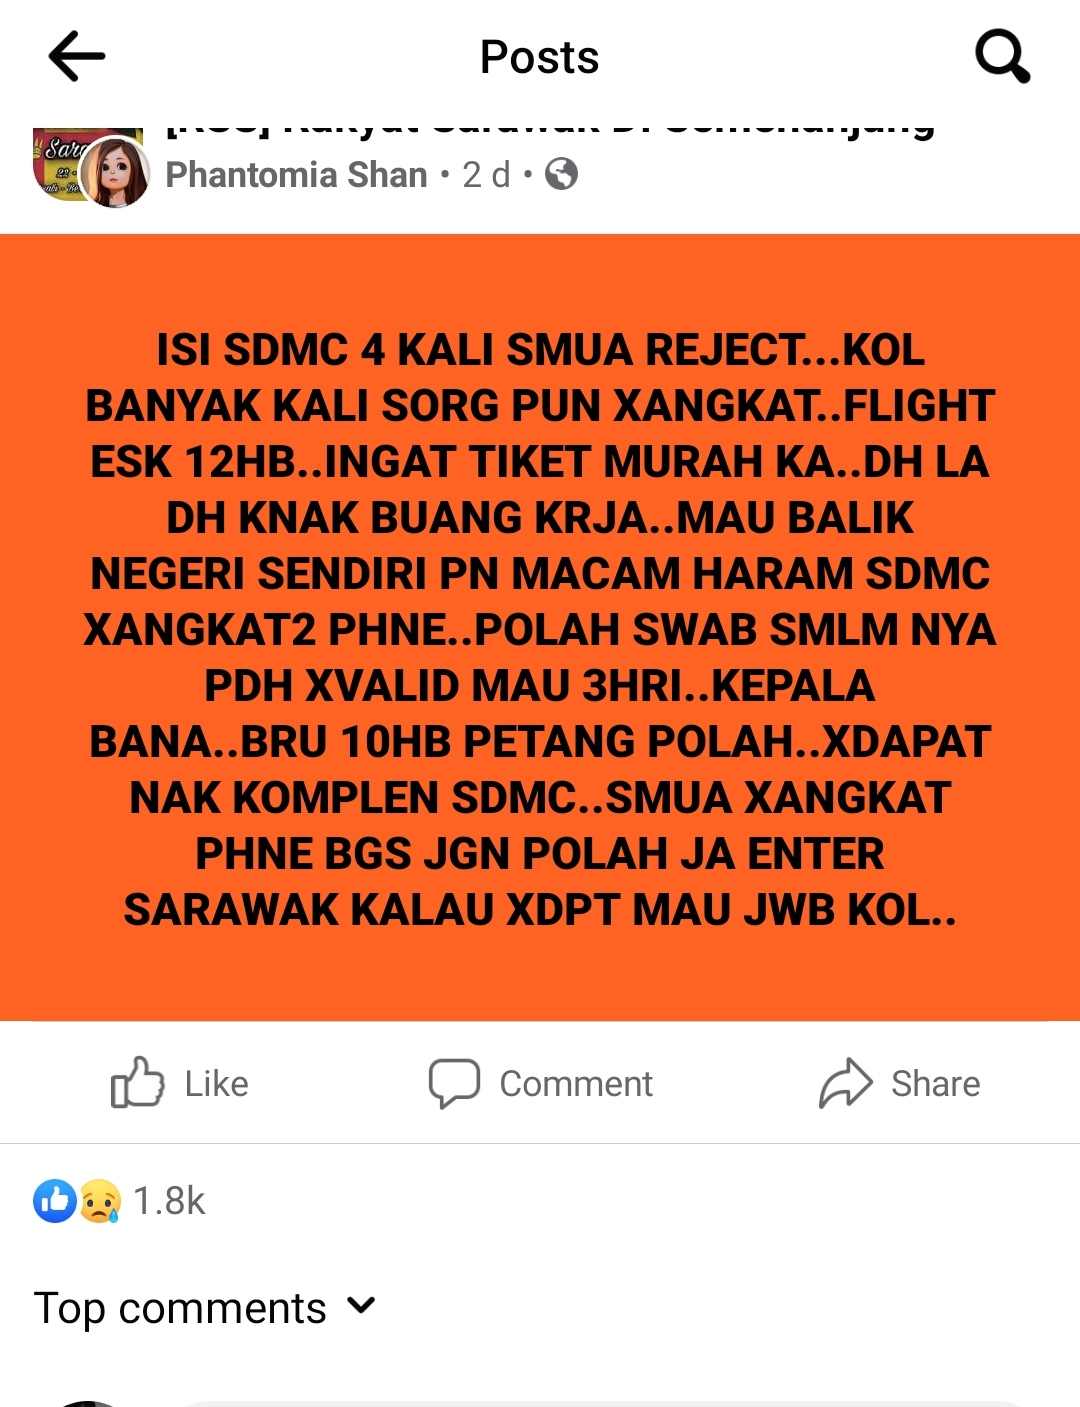 Phantomia Shan shared a Facebook post two days ago, venting her frustrations at being unable to return to her home state after losing her job in KL.